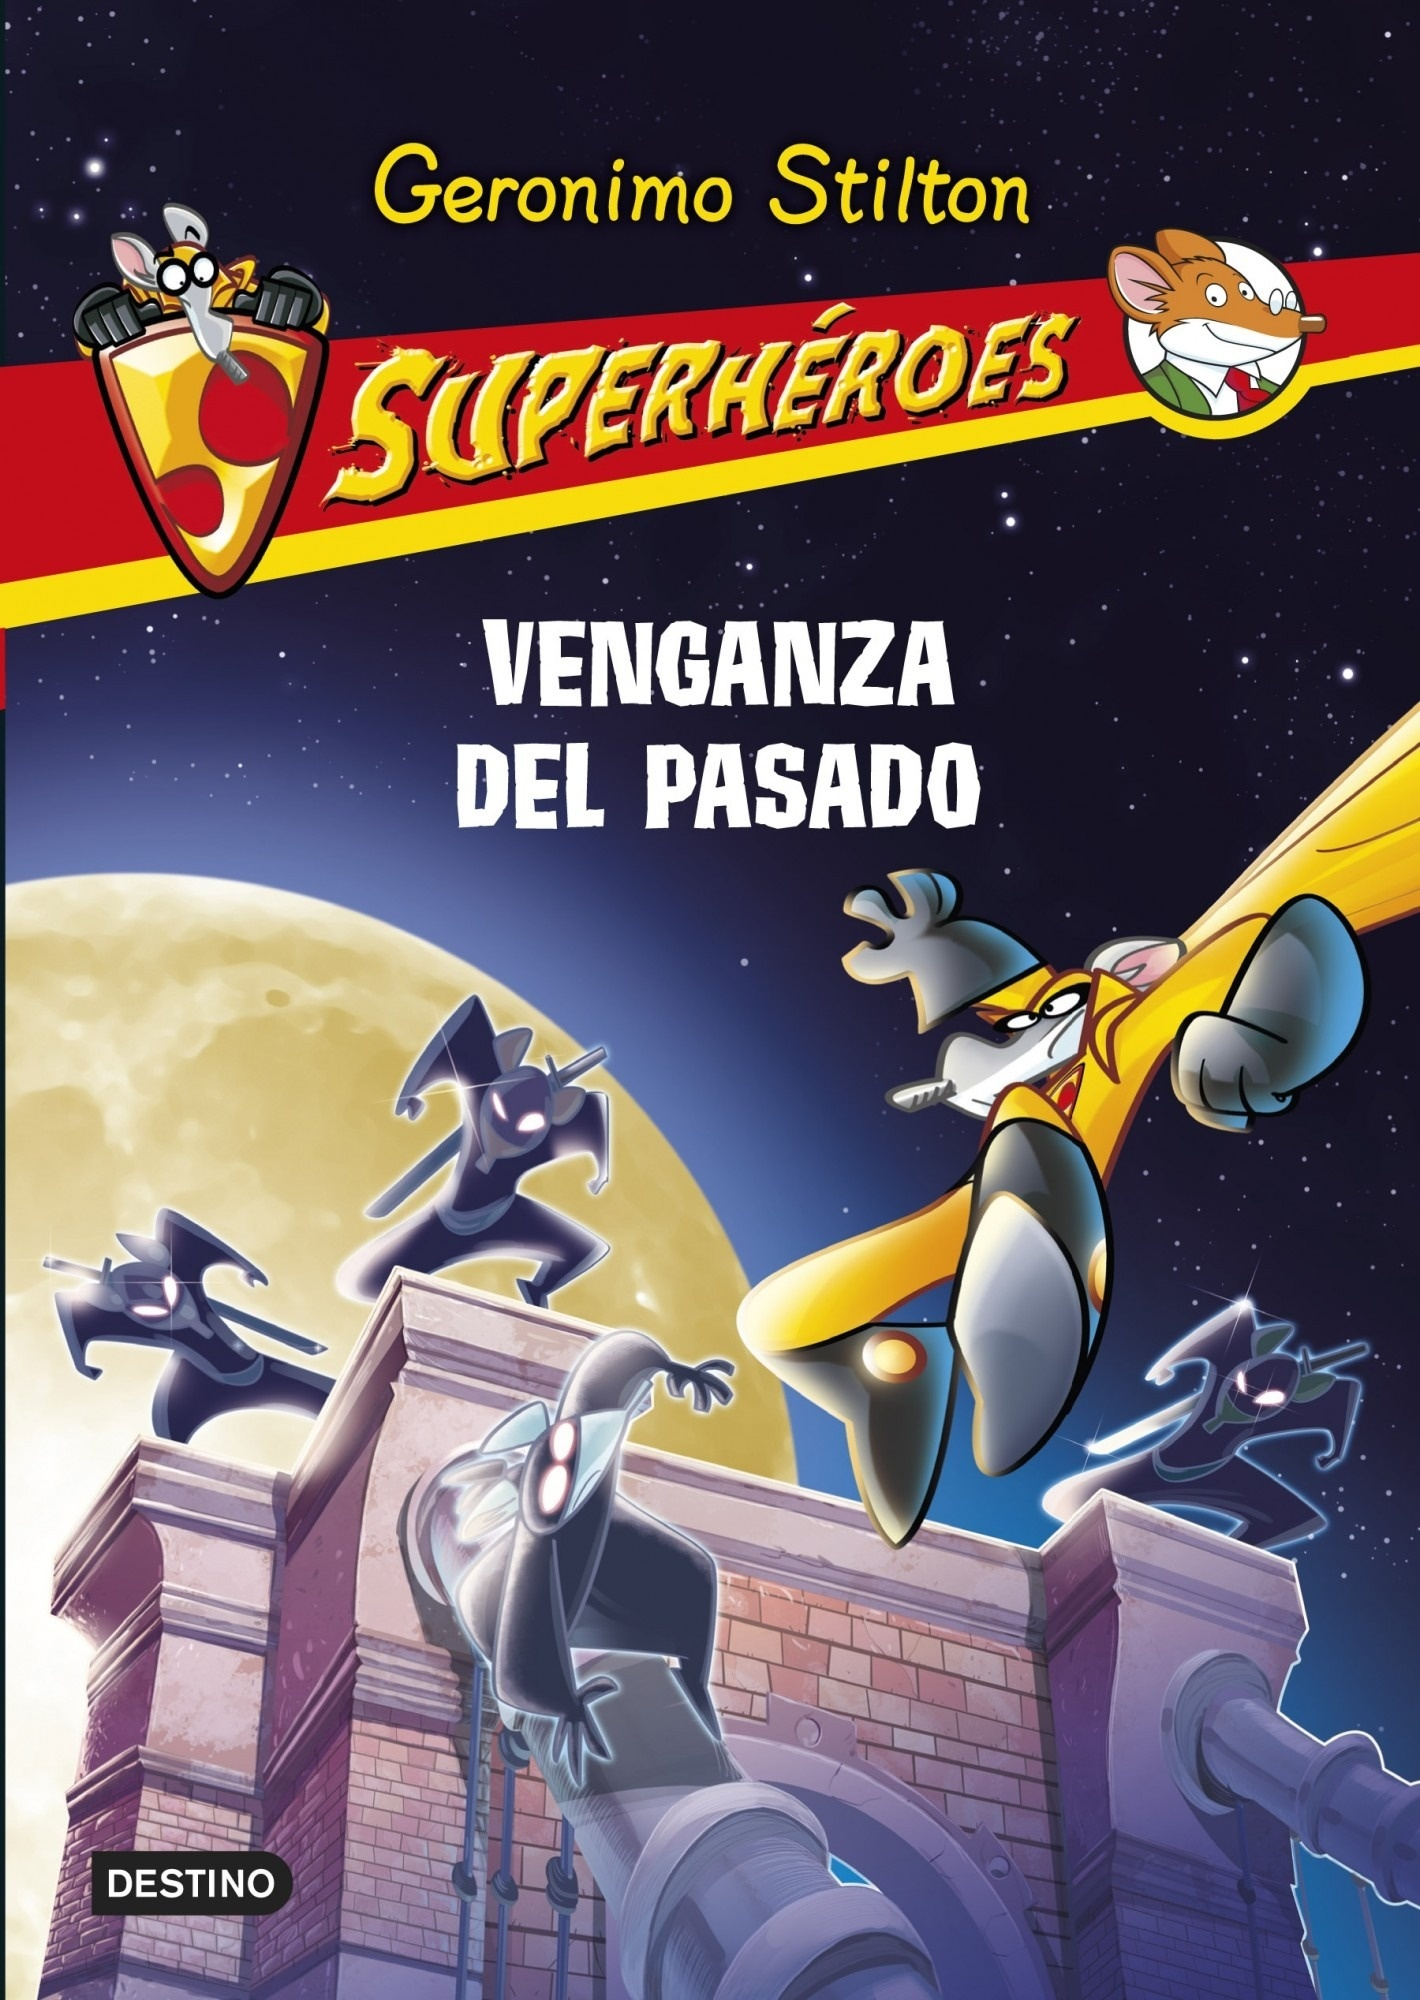 Libro: Venganza del pasado Vol.11 'Superhéroes 11' - Stilton, Geronimo